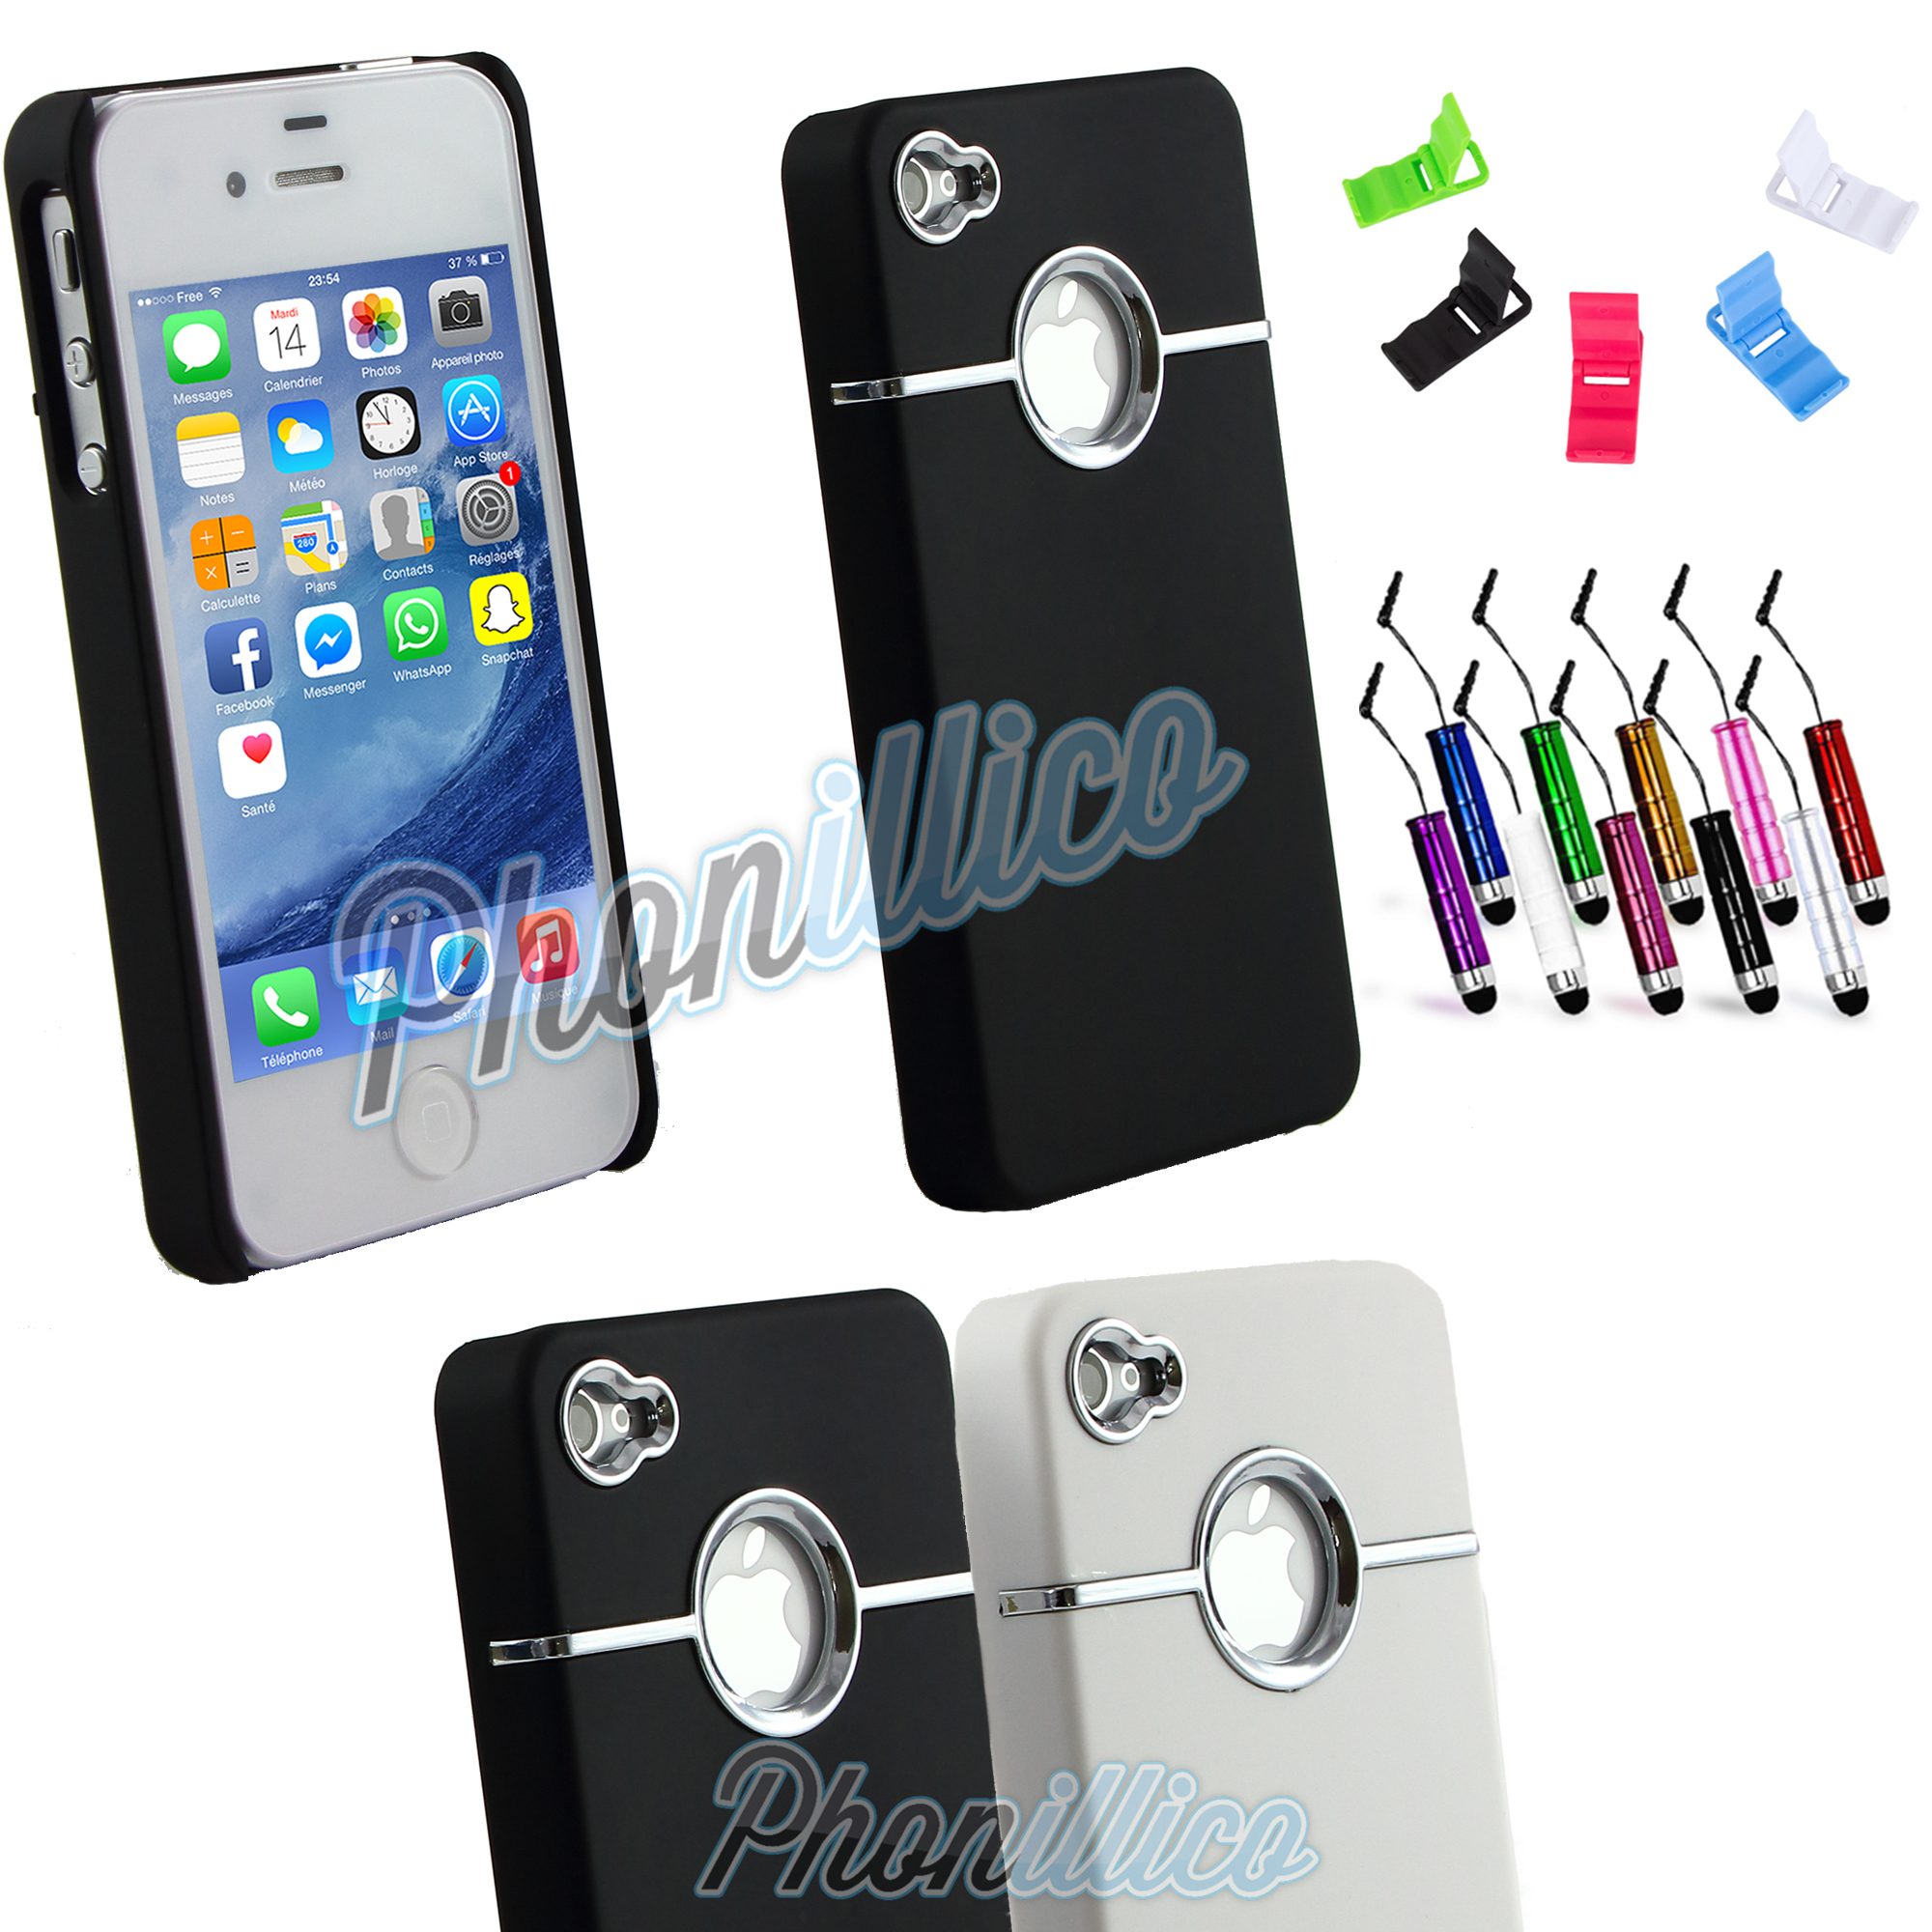 coque housse etui ligne argent pour apple iphone 4 4s. Black Bedroom Furniture Sets. Home Design Ideas